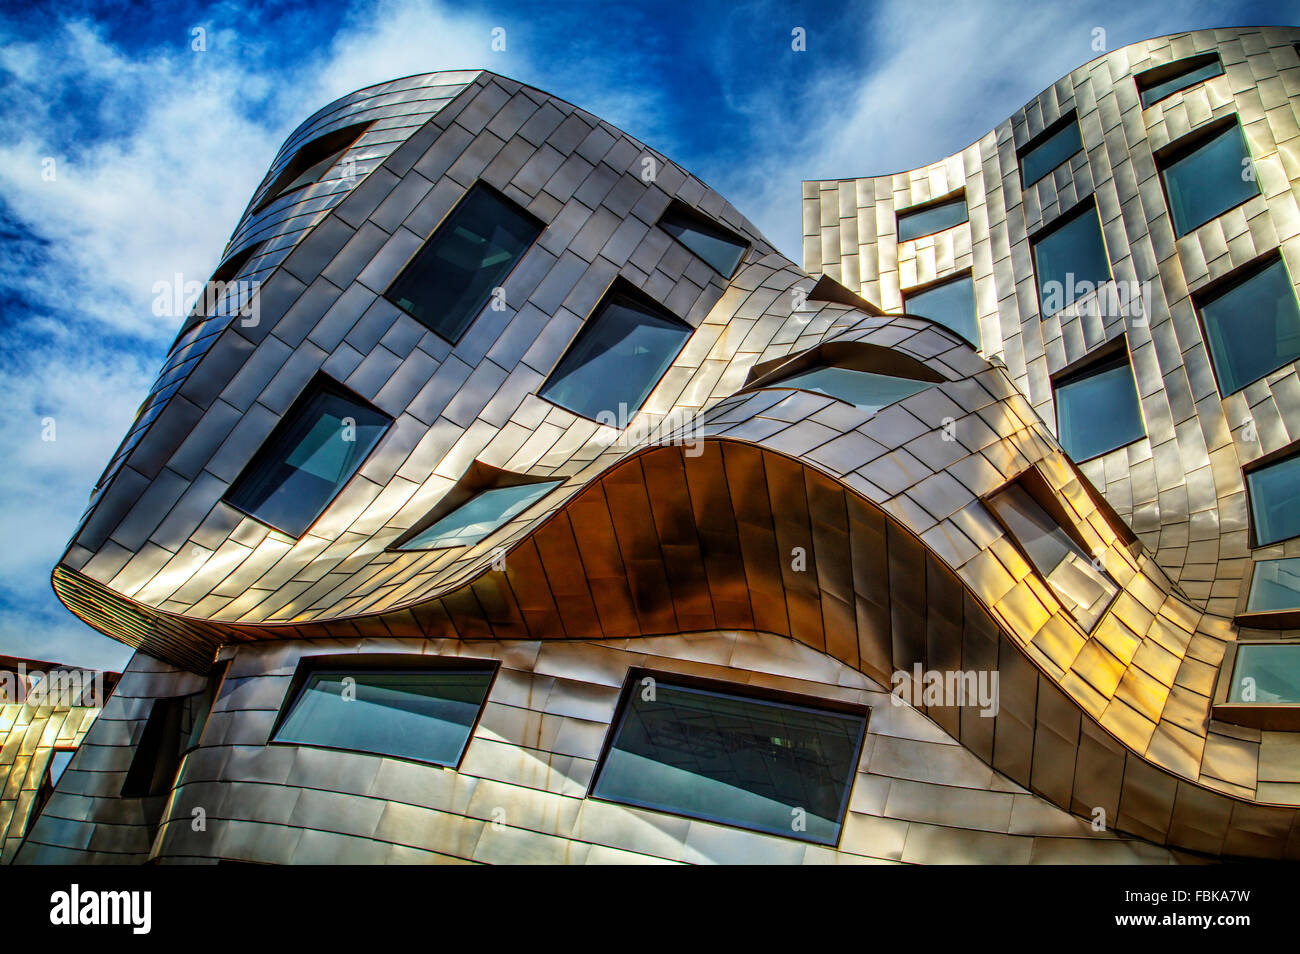 Cleveland Clinic Lou Ruvo Center for Brain Health, architect Frank Gehry, opened on May 21, 2010 in Las Vegas, Nevada - Stock Image